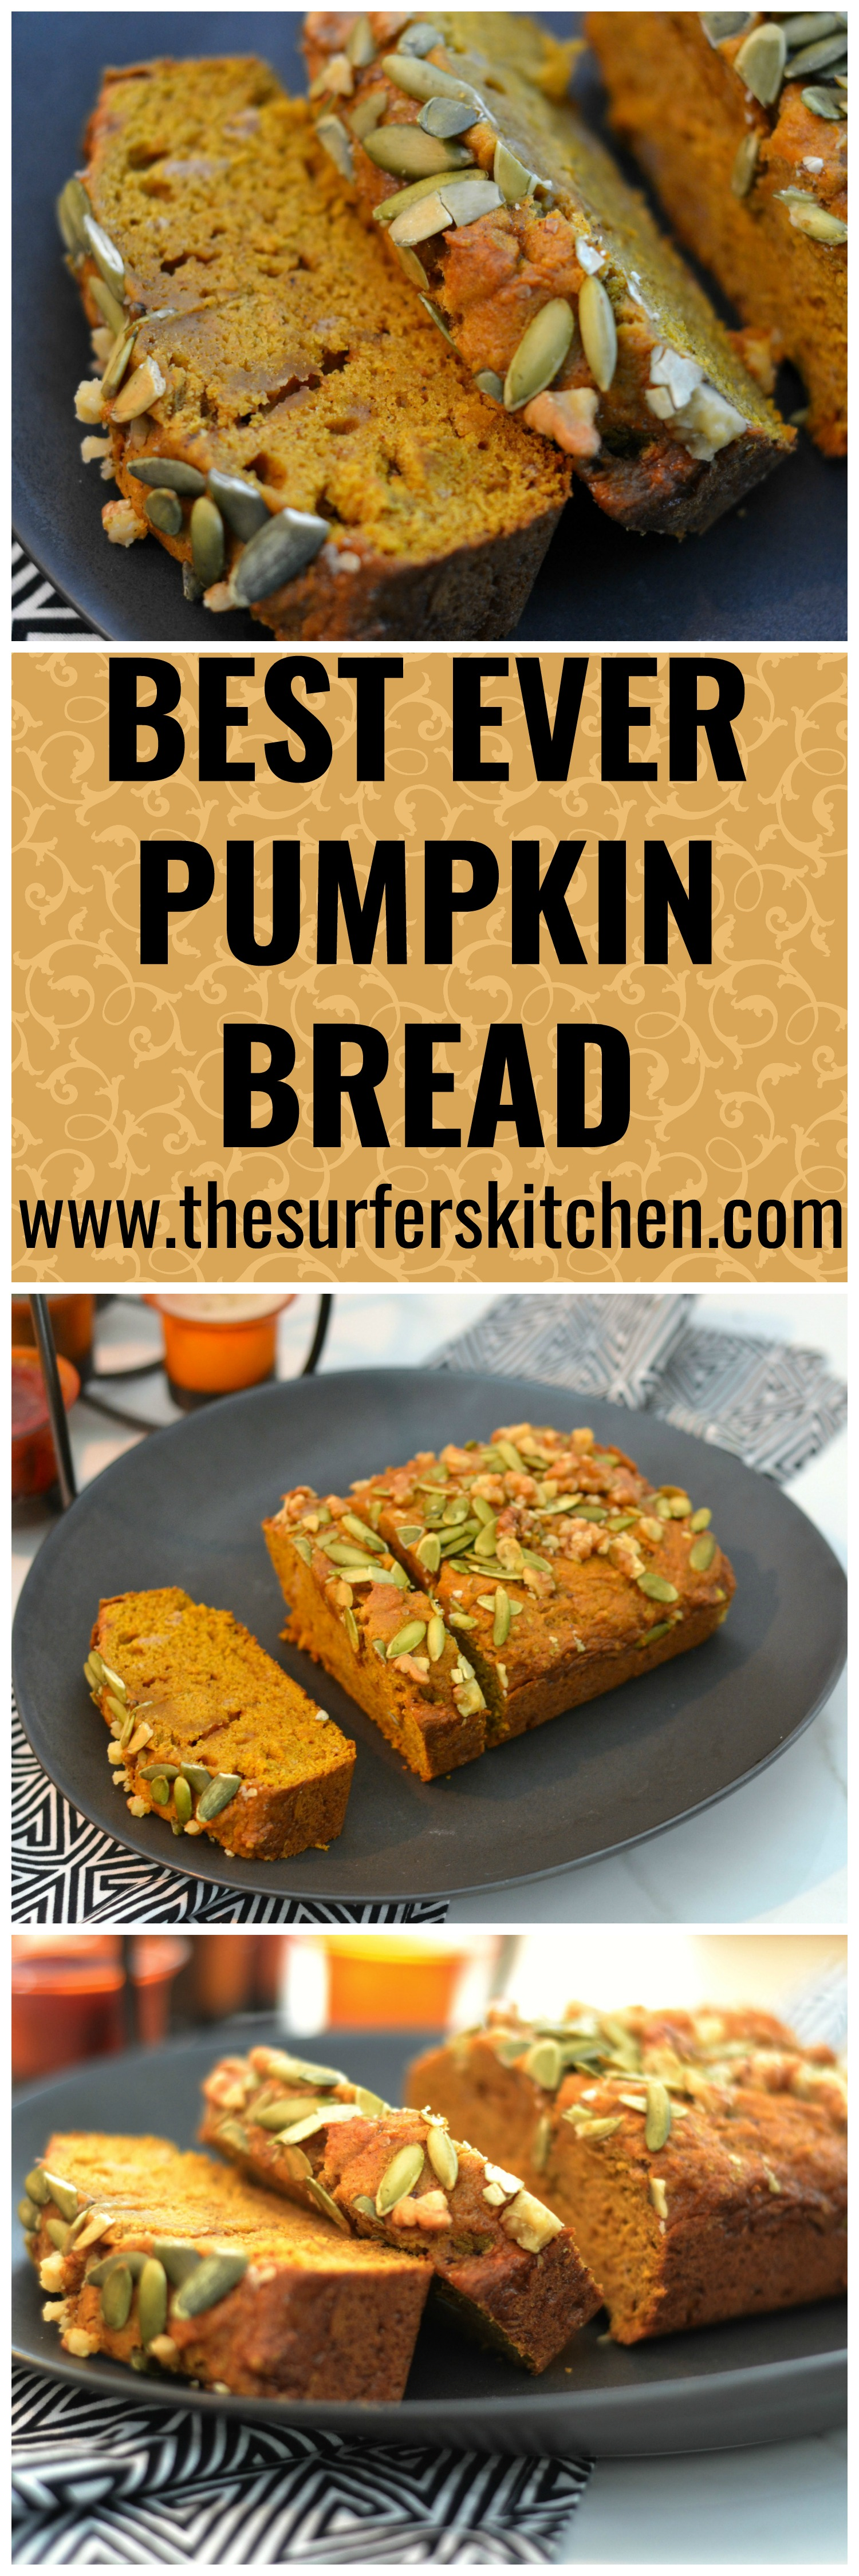 Best Ever Pumpkin Bread that rivals that of Starbucks and other bakeries. Not too spicy, not too sweet. Just perfect. Enjoy!   www.thesurferskitchen.com